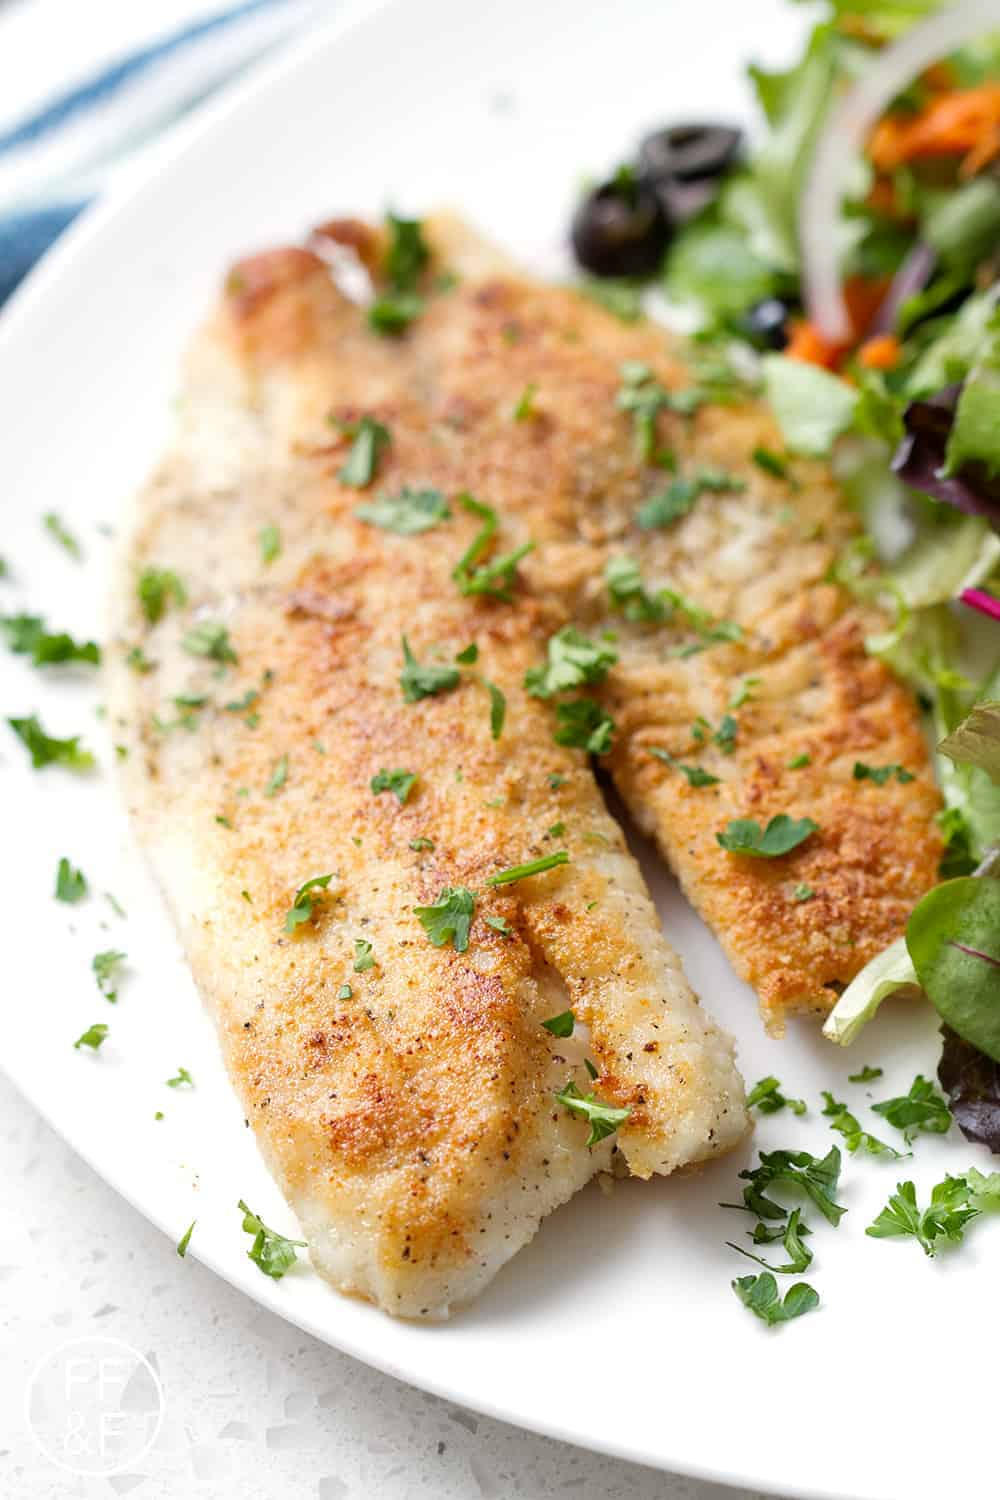 Here's an easy recipe for Pan Fried Tilapia that's quick and full of flavor. Perfect for a weeknight meal when you need dinner on the table, fast! This recipe is perfect if you're on a gluten free, dairy free or autoimmune protocol (AIP) diet.